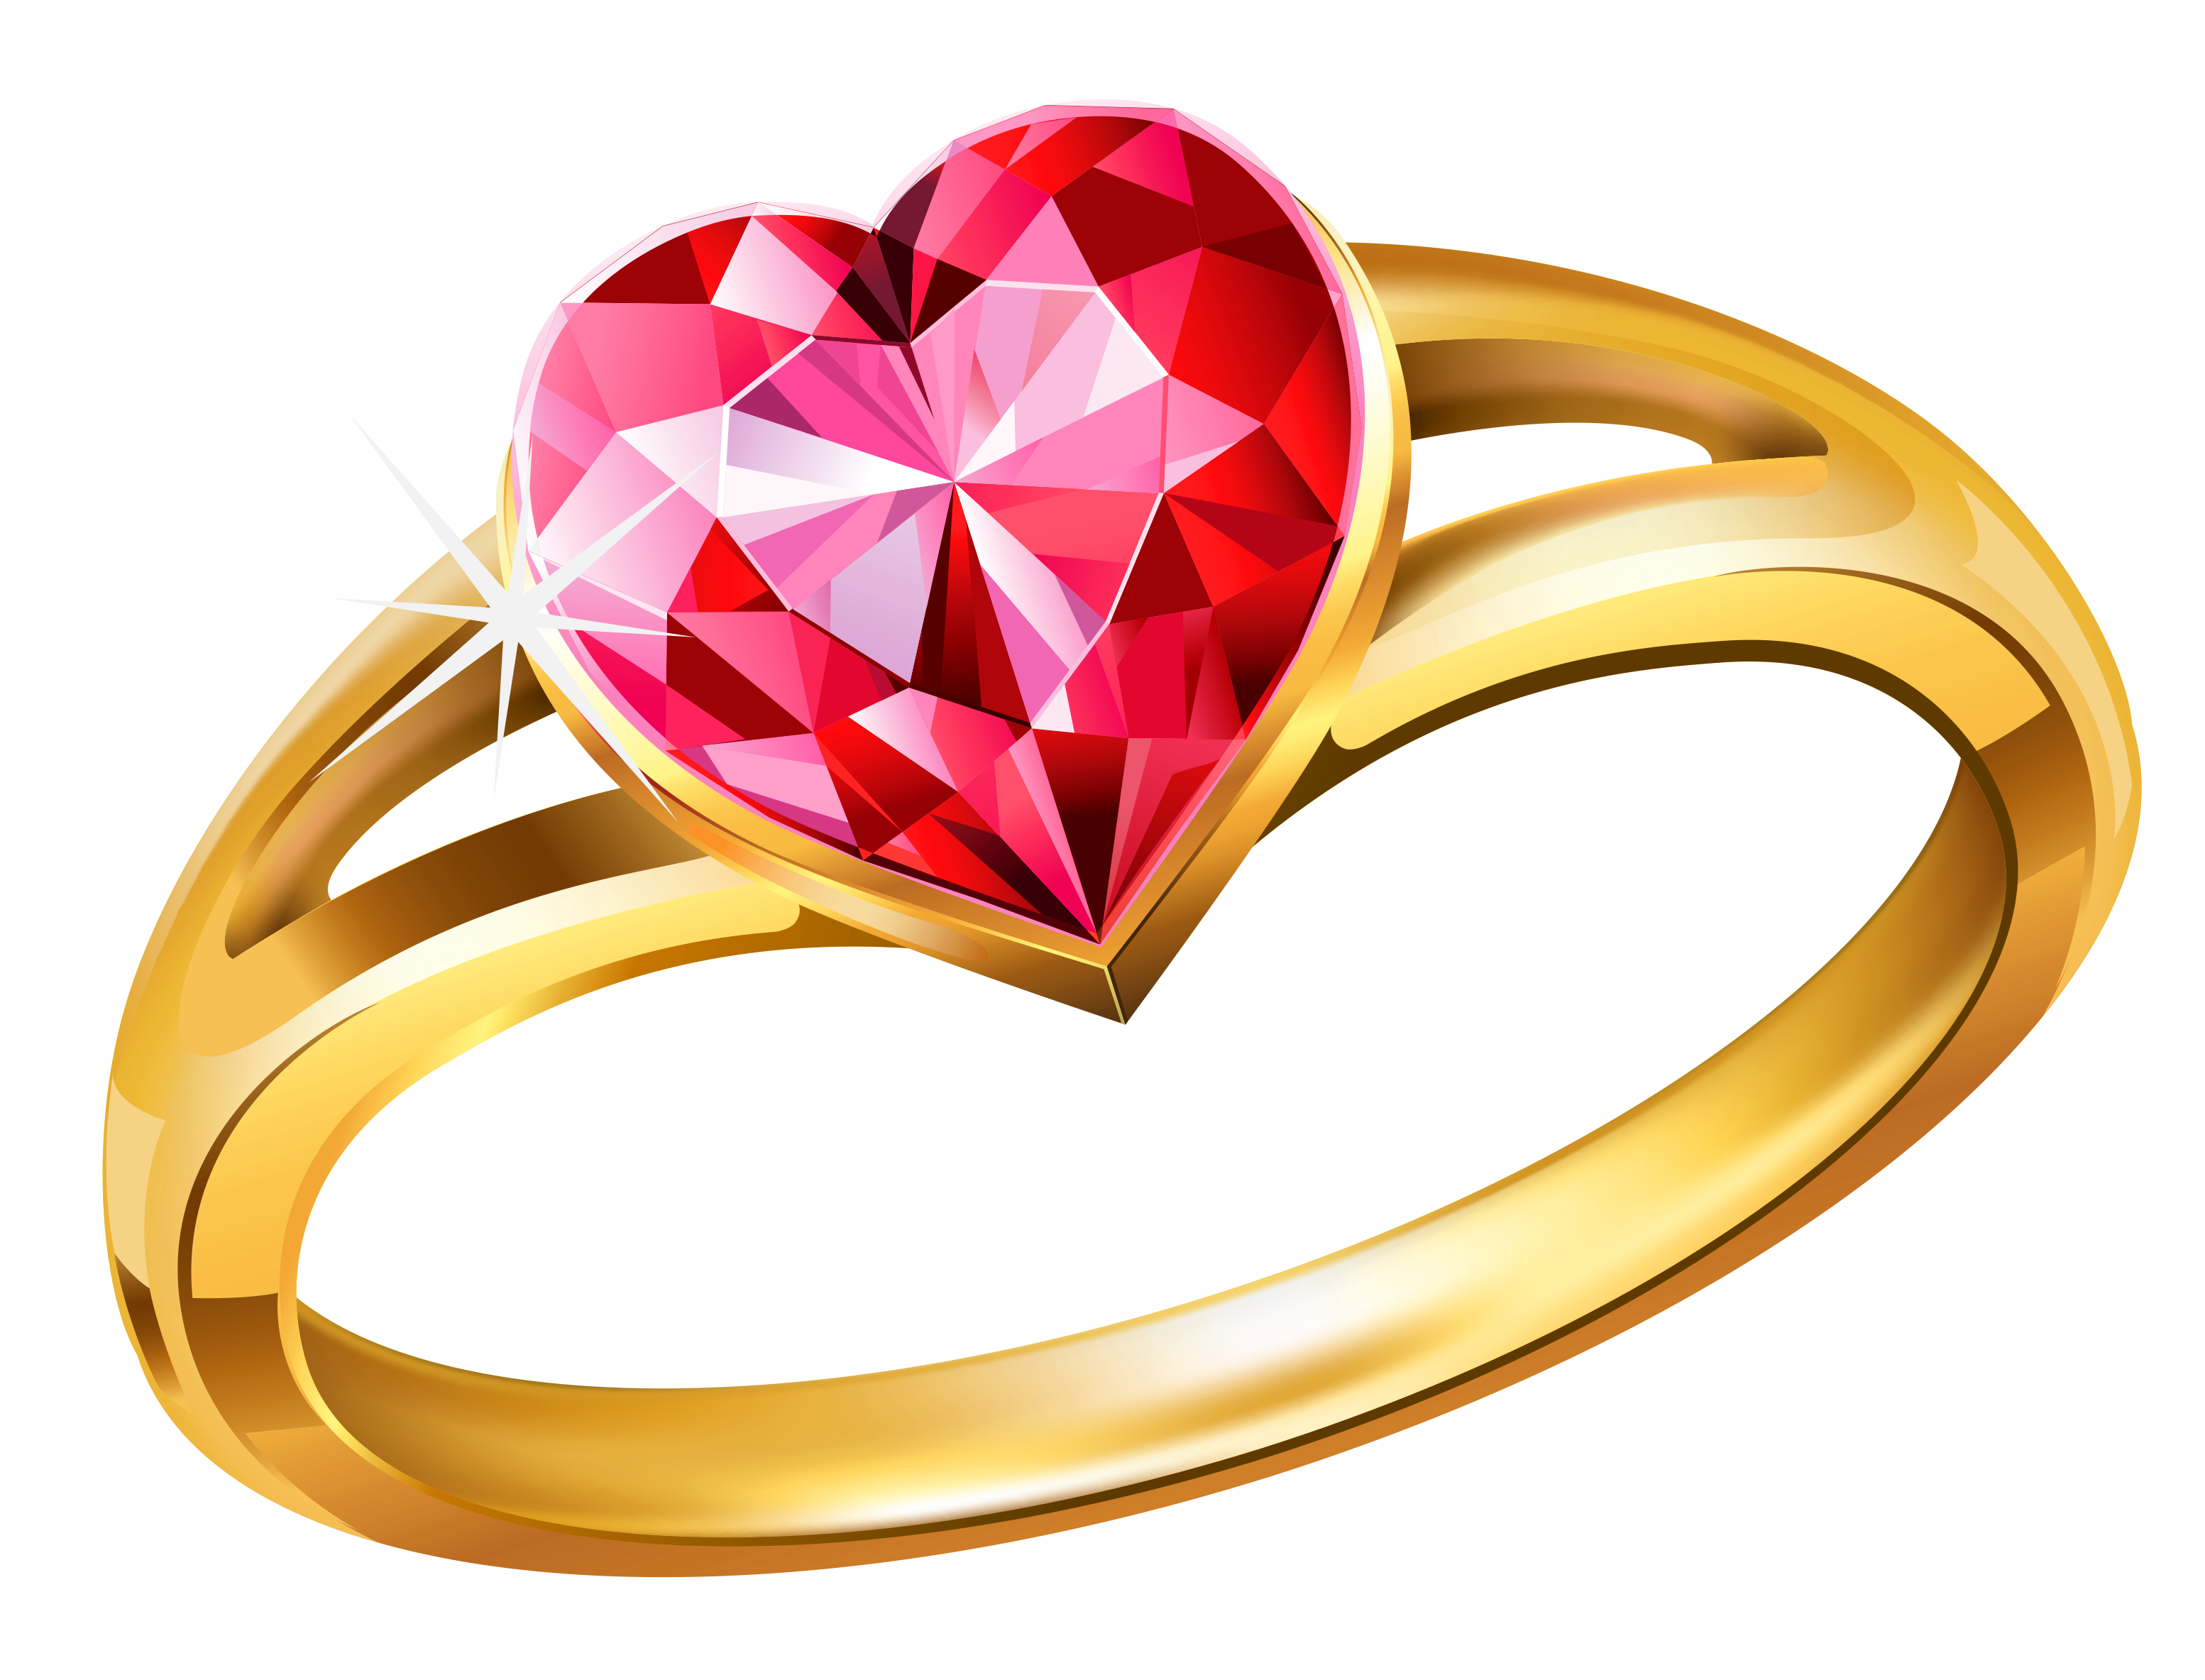 Hearts clipart ring. Gold with pink diamond